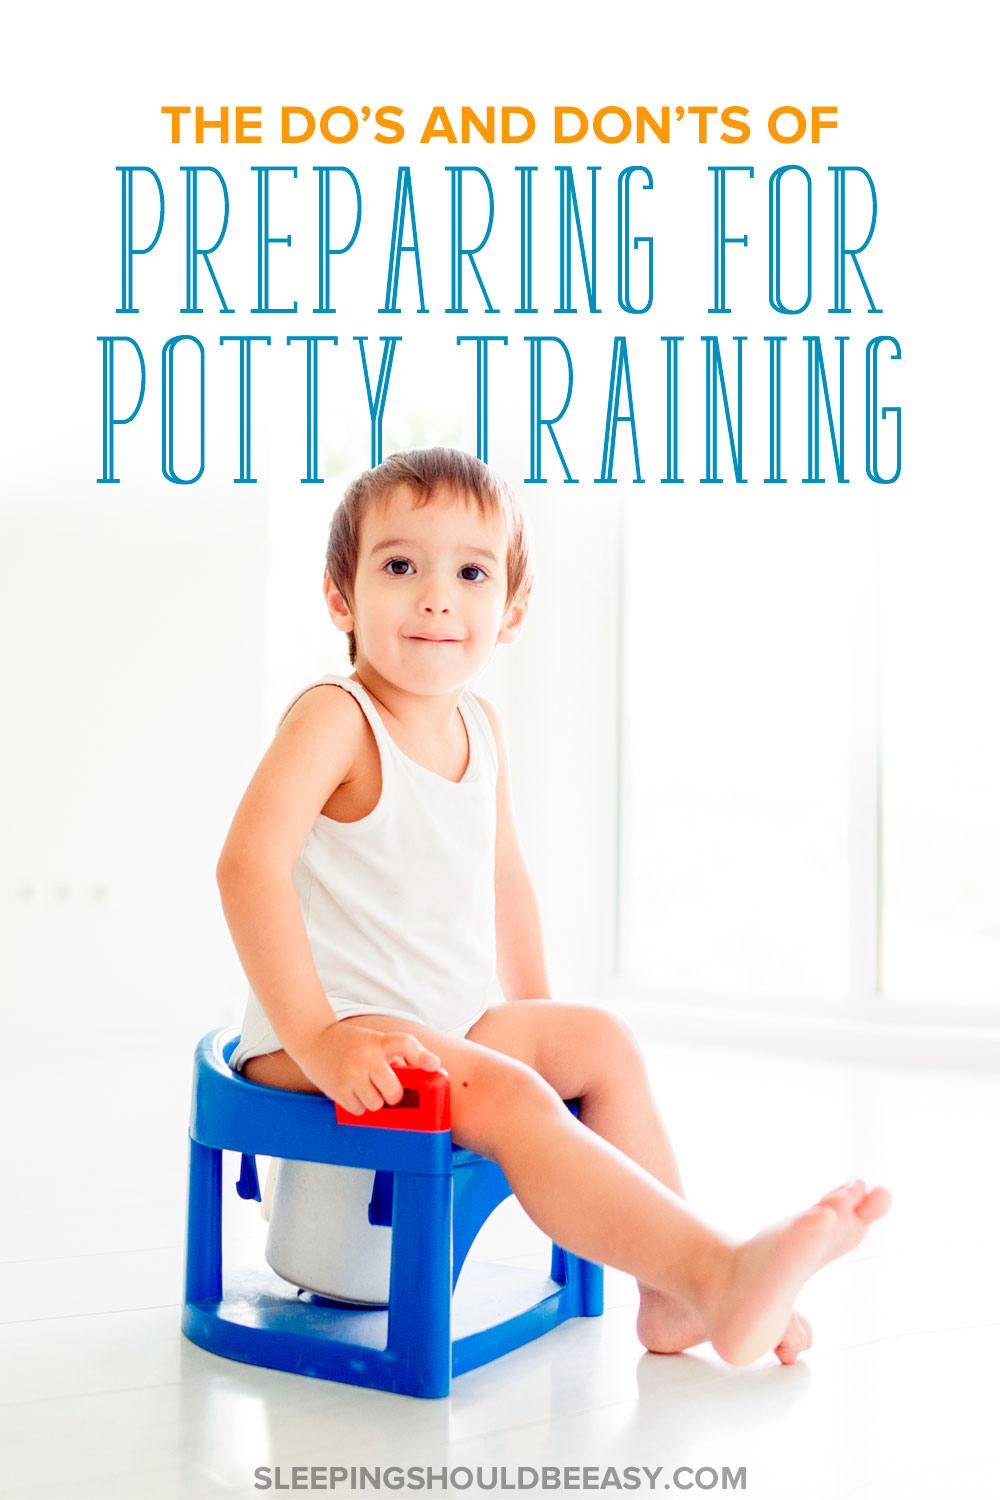 The Do's and Don'ts of Preparing for Potty Training